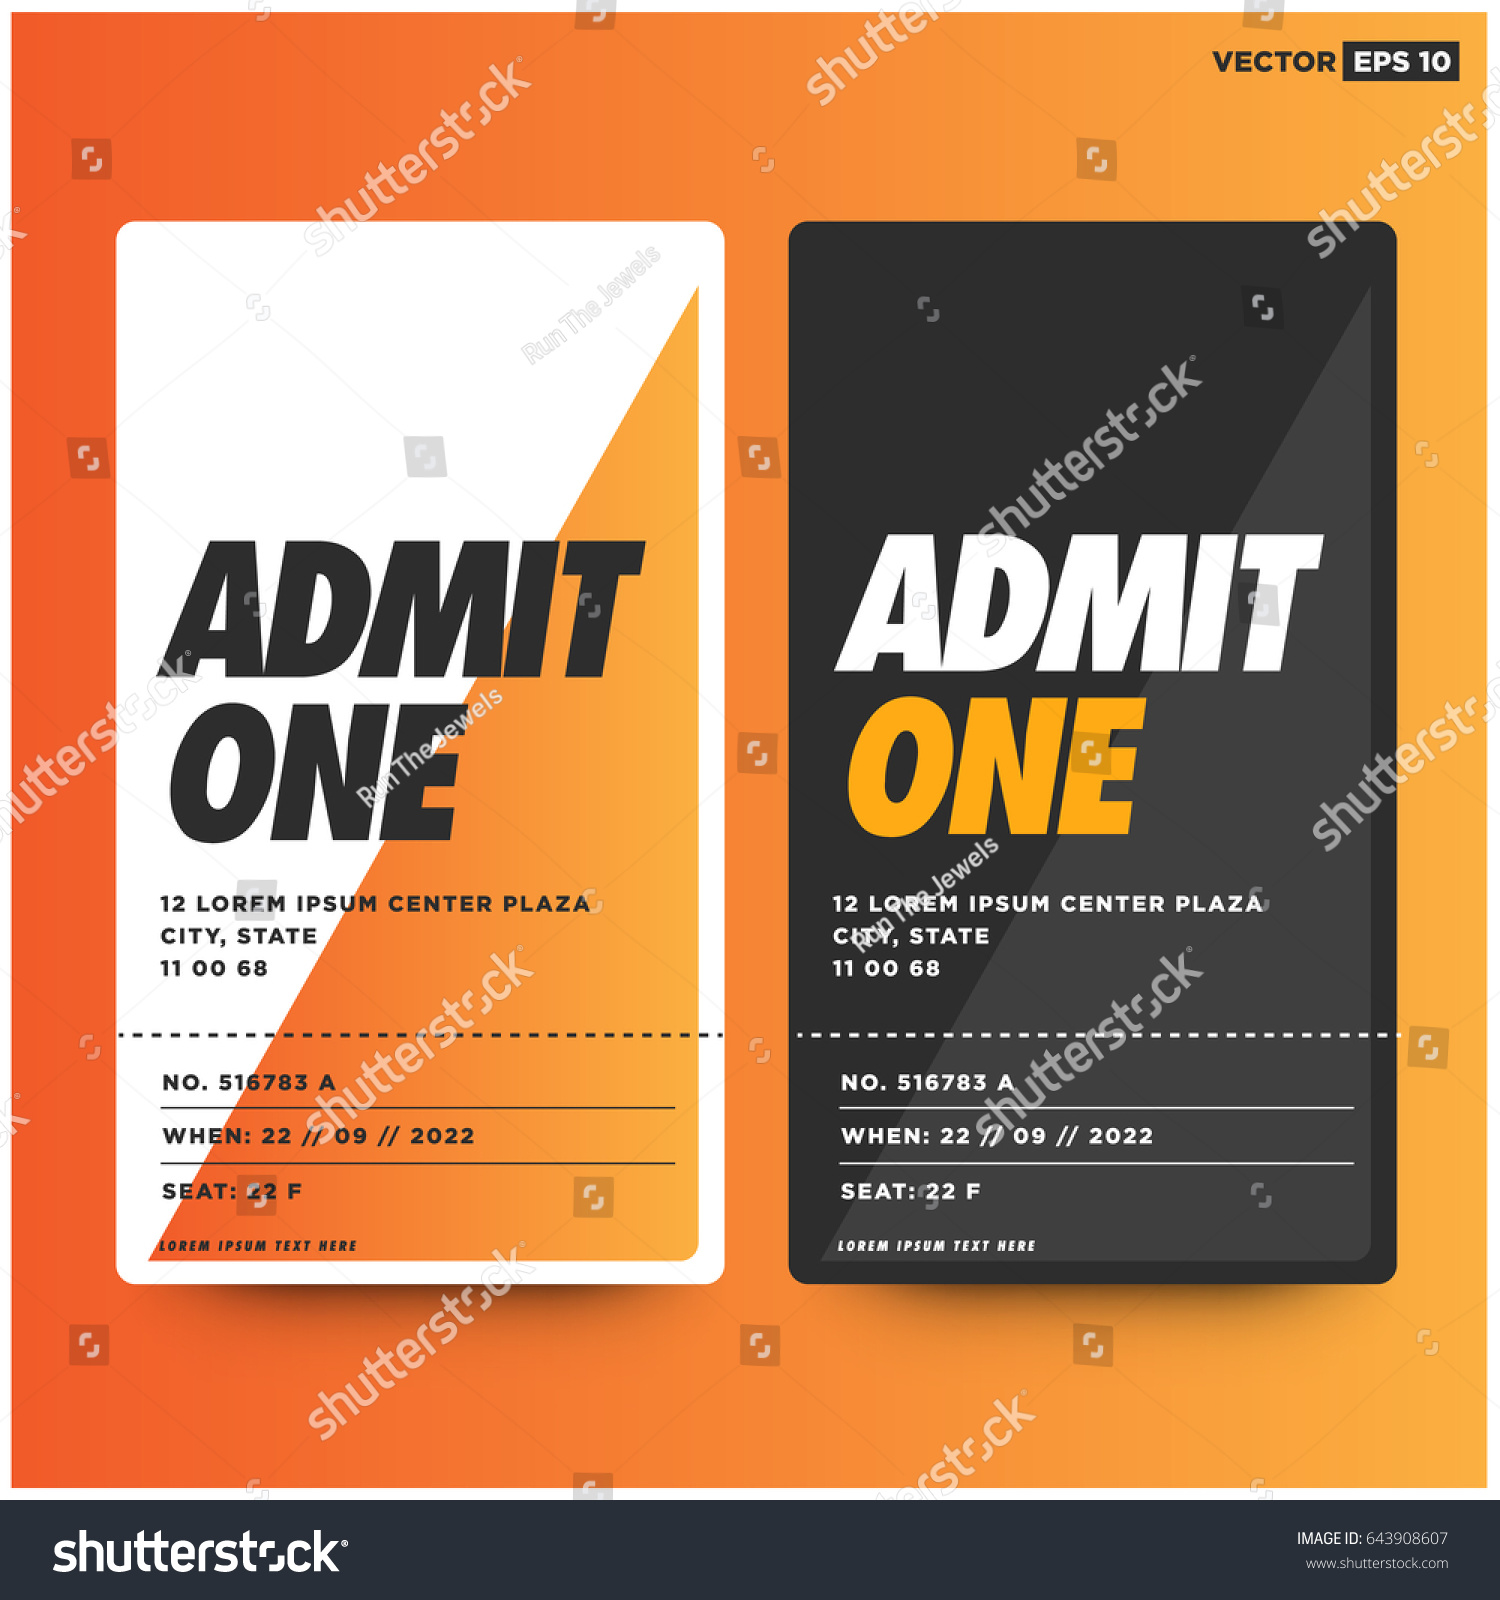 Admit One Ticket Template Number Venue Stock Vector 643908607 ...